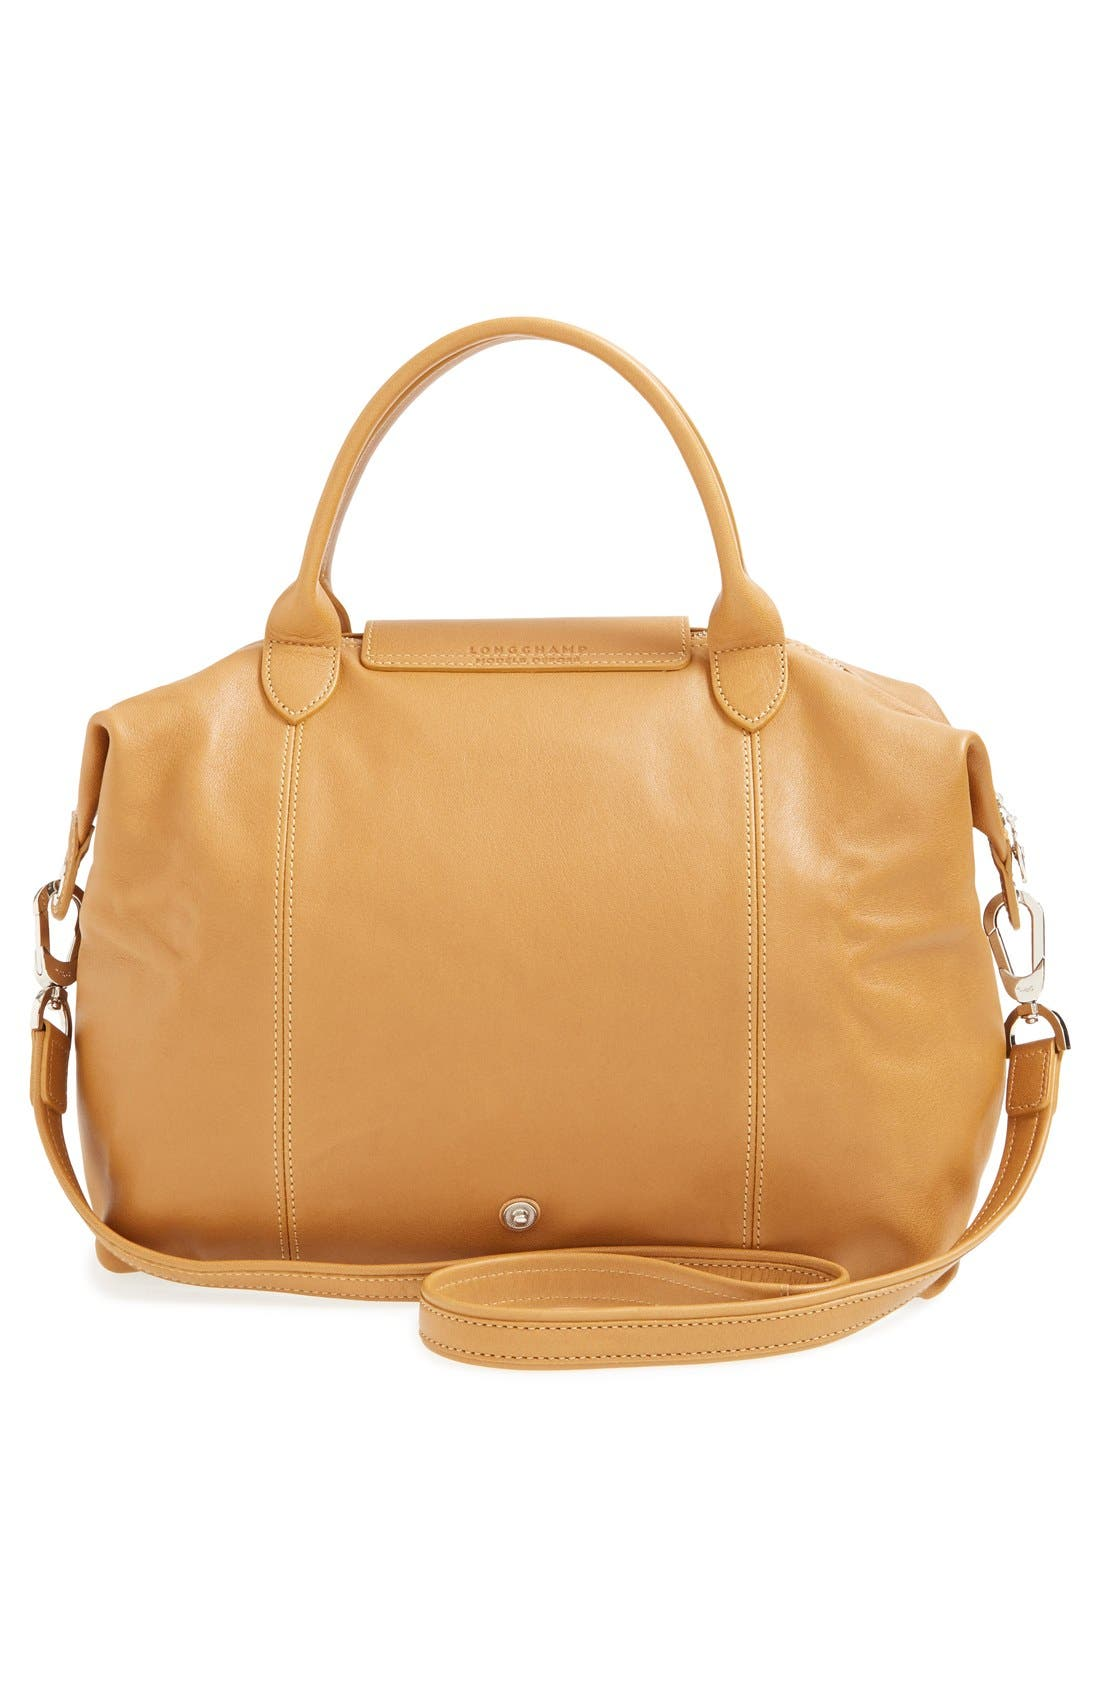 Medium 'Le Pliage Cuir' Leather Top Handle Tote,                             Alternate thumbnail 59, color,